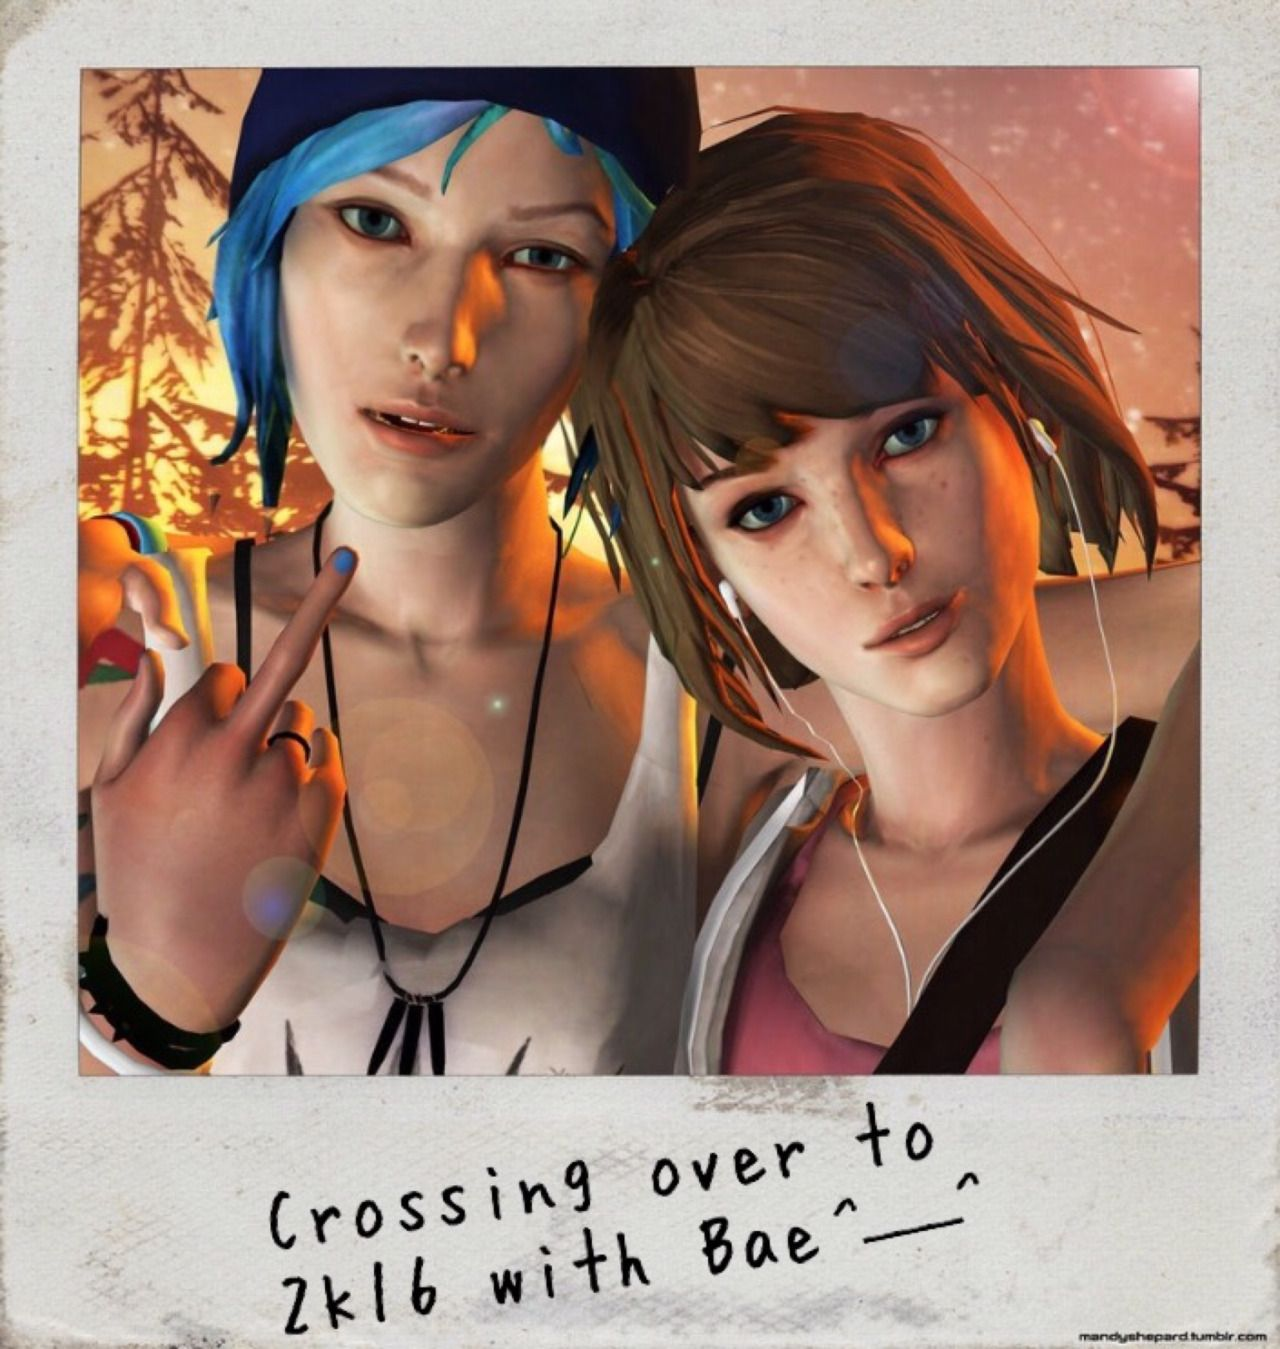 """Pricefield (Life is Strange) - """"Reblog for 2k16 with Max and Chloe! (With EMOJI)"""" by Lisislyf"""